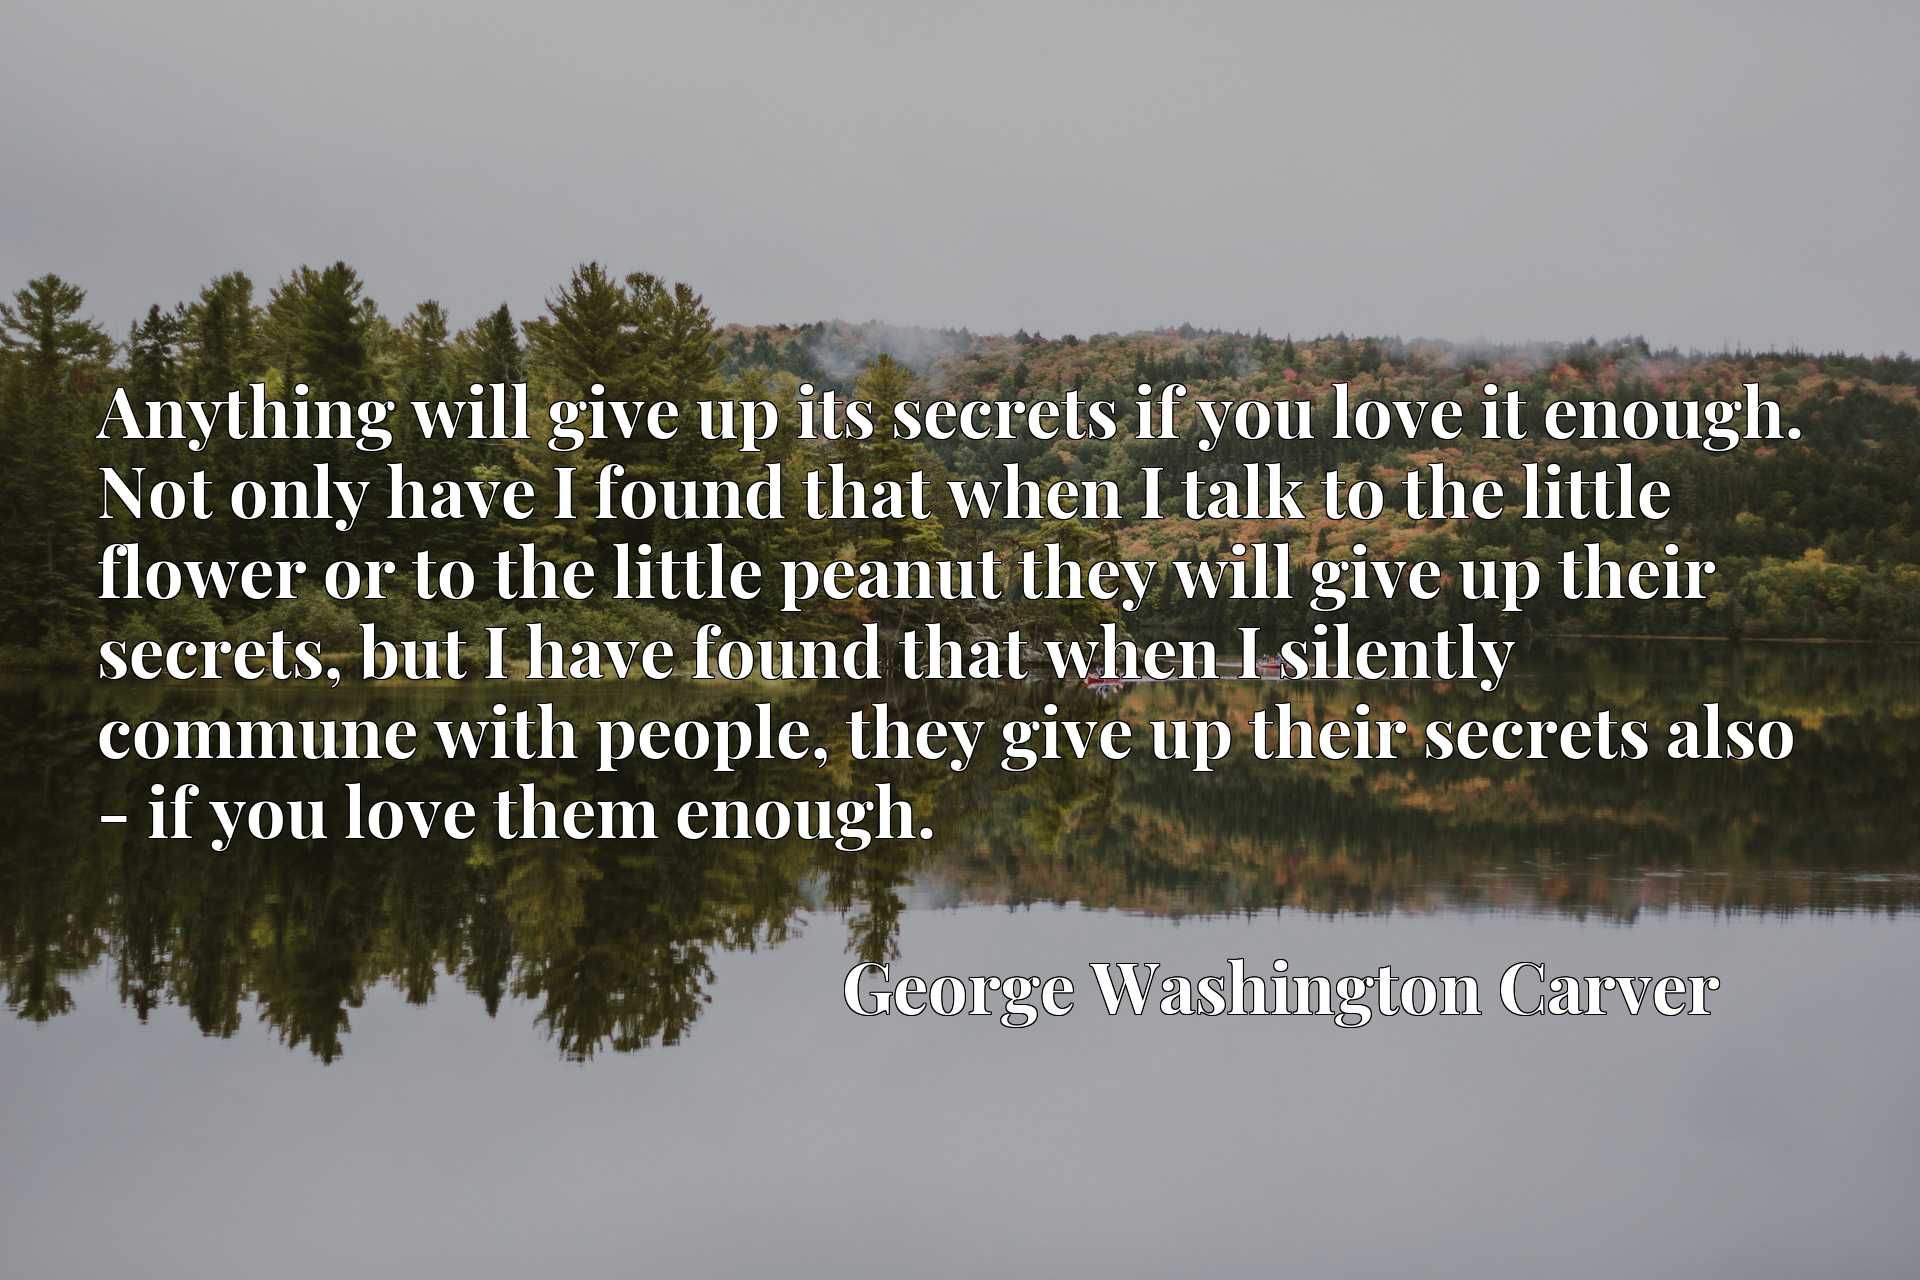 Anything will give up its secrets if you love it enough. Not only have I found that when I talk to the little flower or to the little peanut they will give up their secrets, but I have found that when I silently commune with people, they give up their secrets also - if you love them enough.